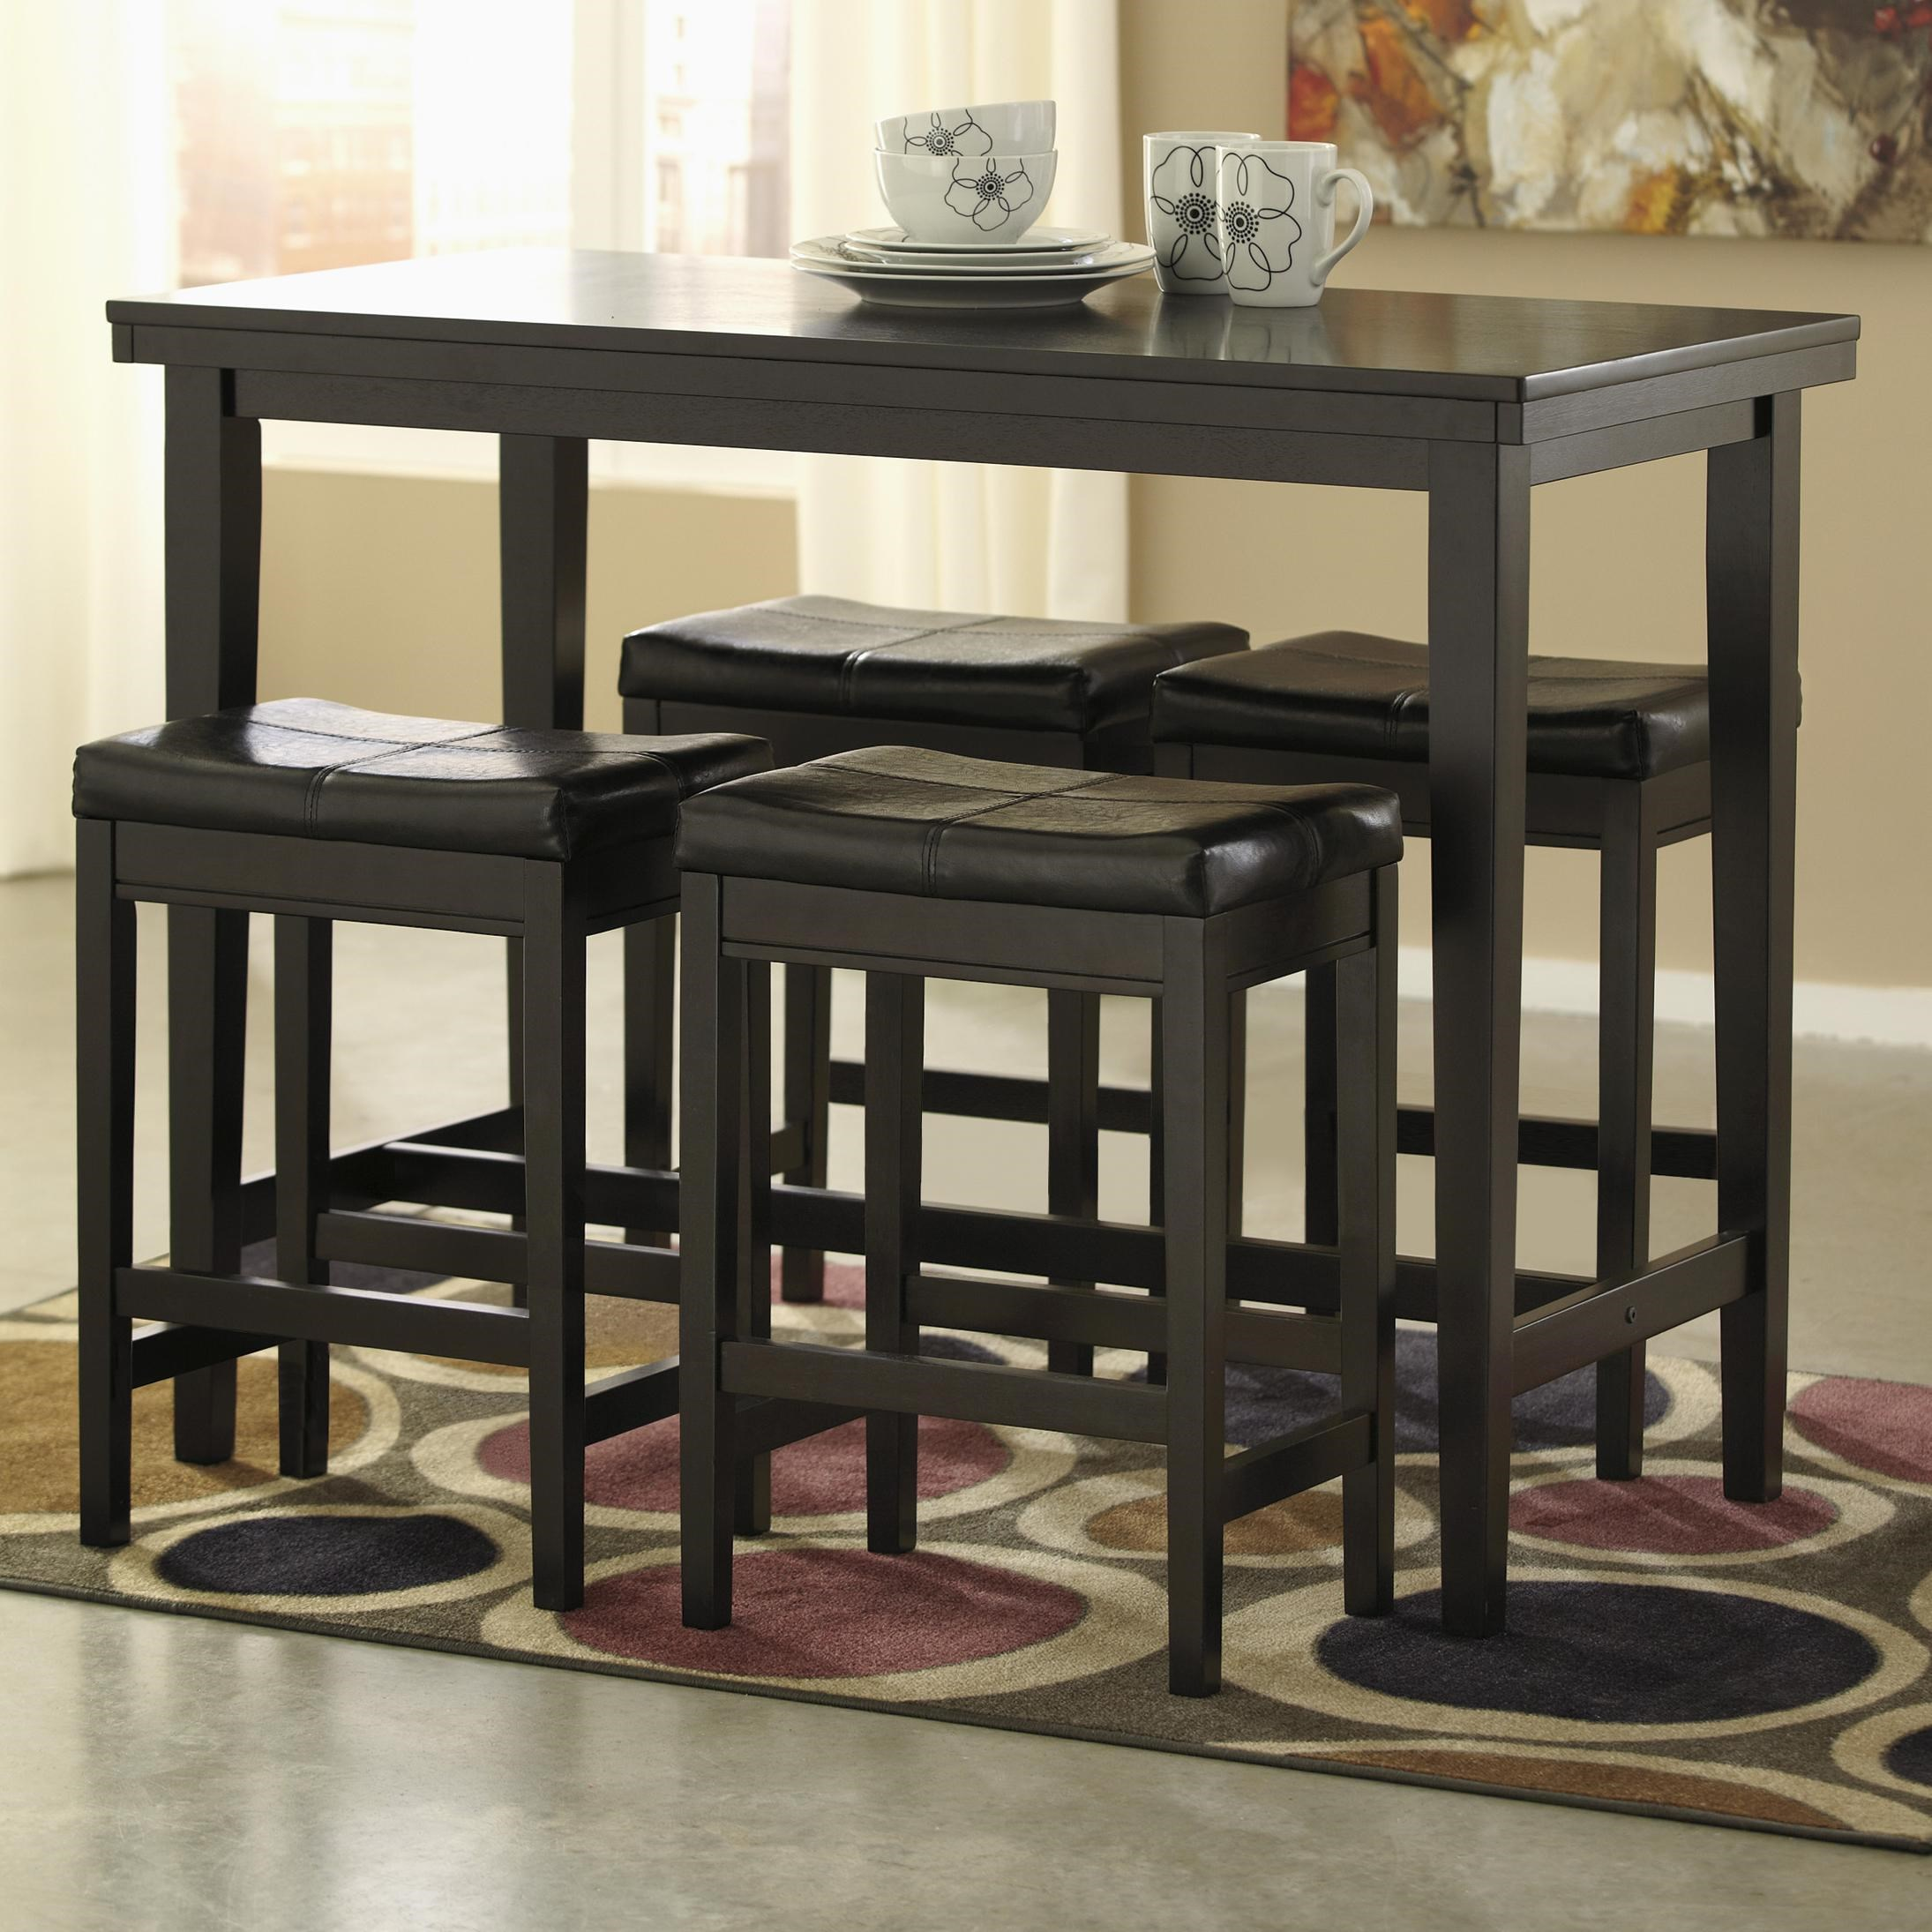 Signature Design By Ashley Kimonte 5 Piece Counter Table Set With Dark  Brown Upholstered Stools   Furniture And ApplianceMart   Pub Table And Stool  Sets